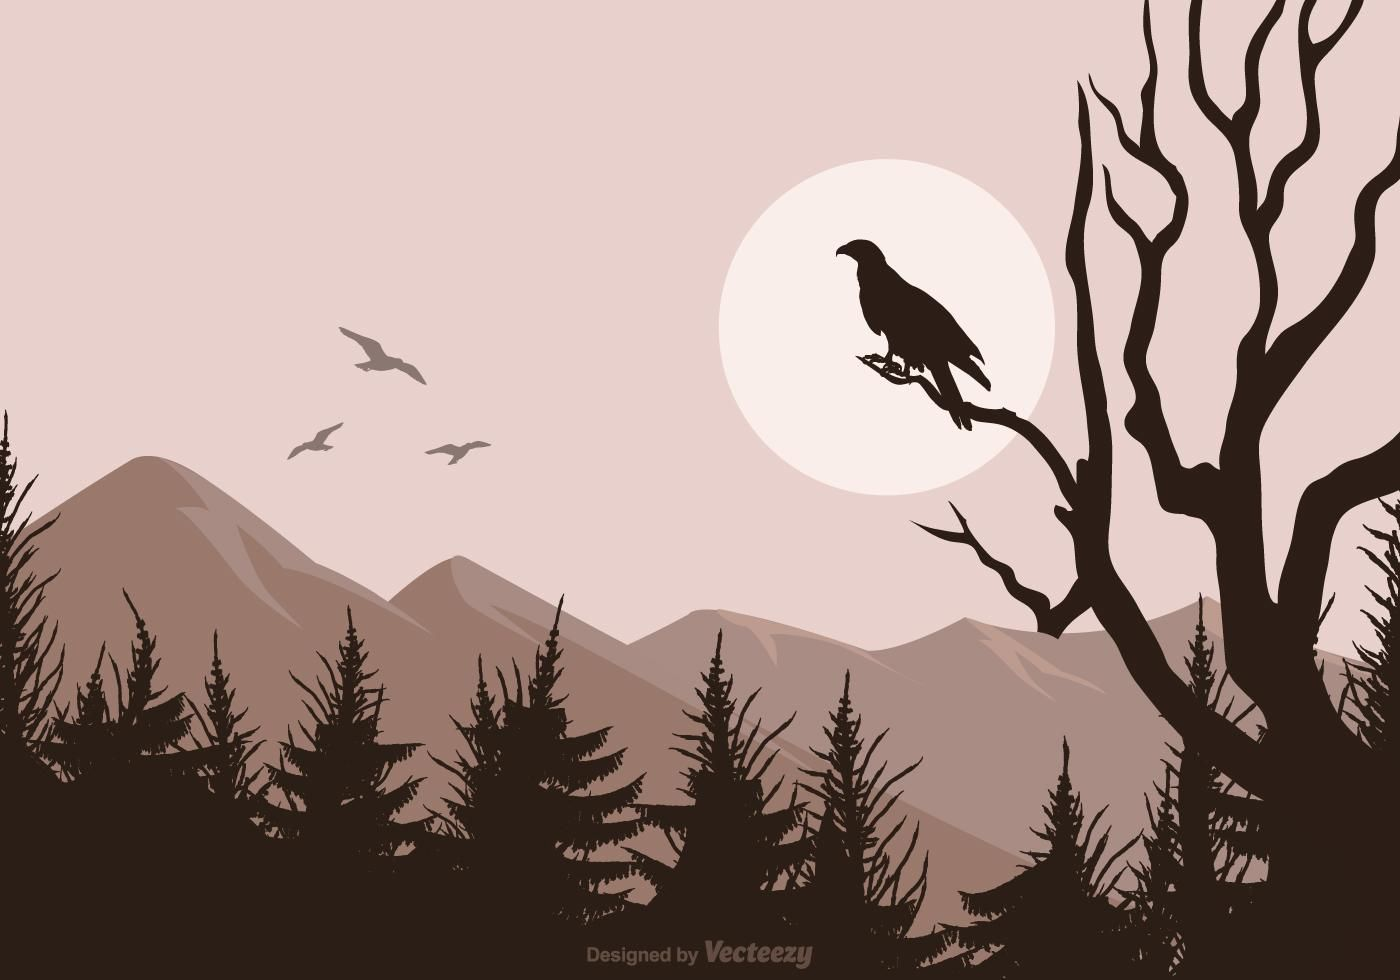 Pubg Wallpaper Vector: Buzzard Silhouette Isolated On Vector Landscape Background